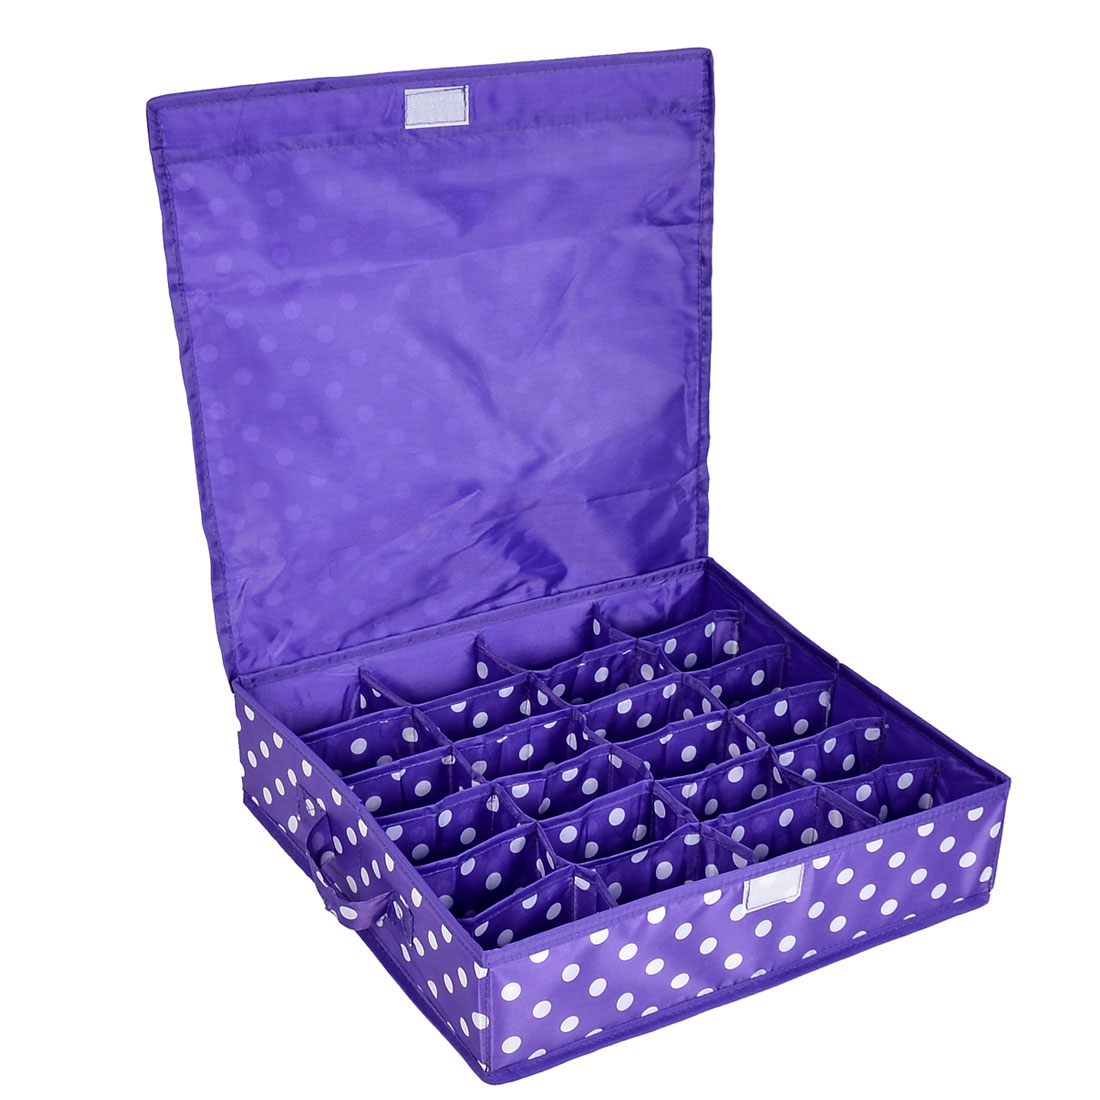 Household Dots Pattern 24 Compartments Storage Bag Packing Case Purple